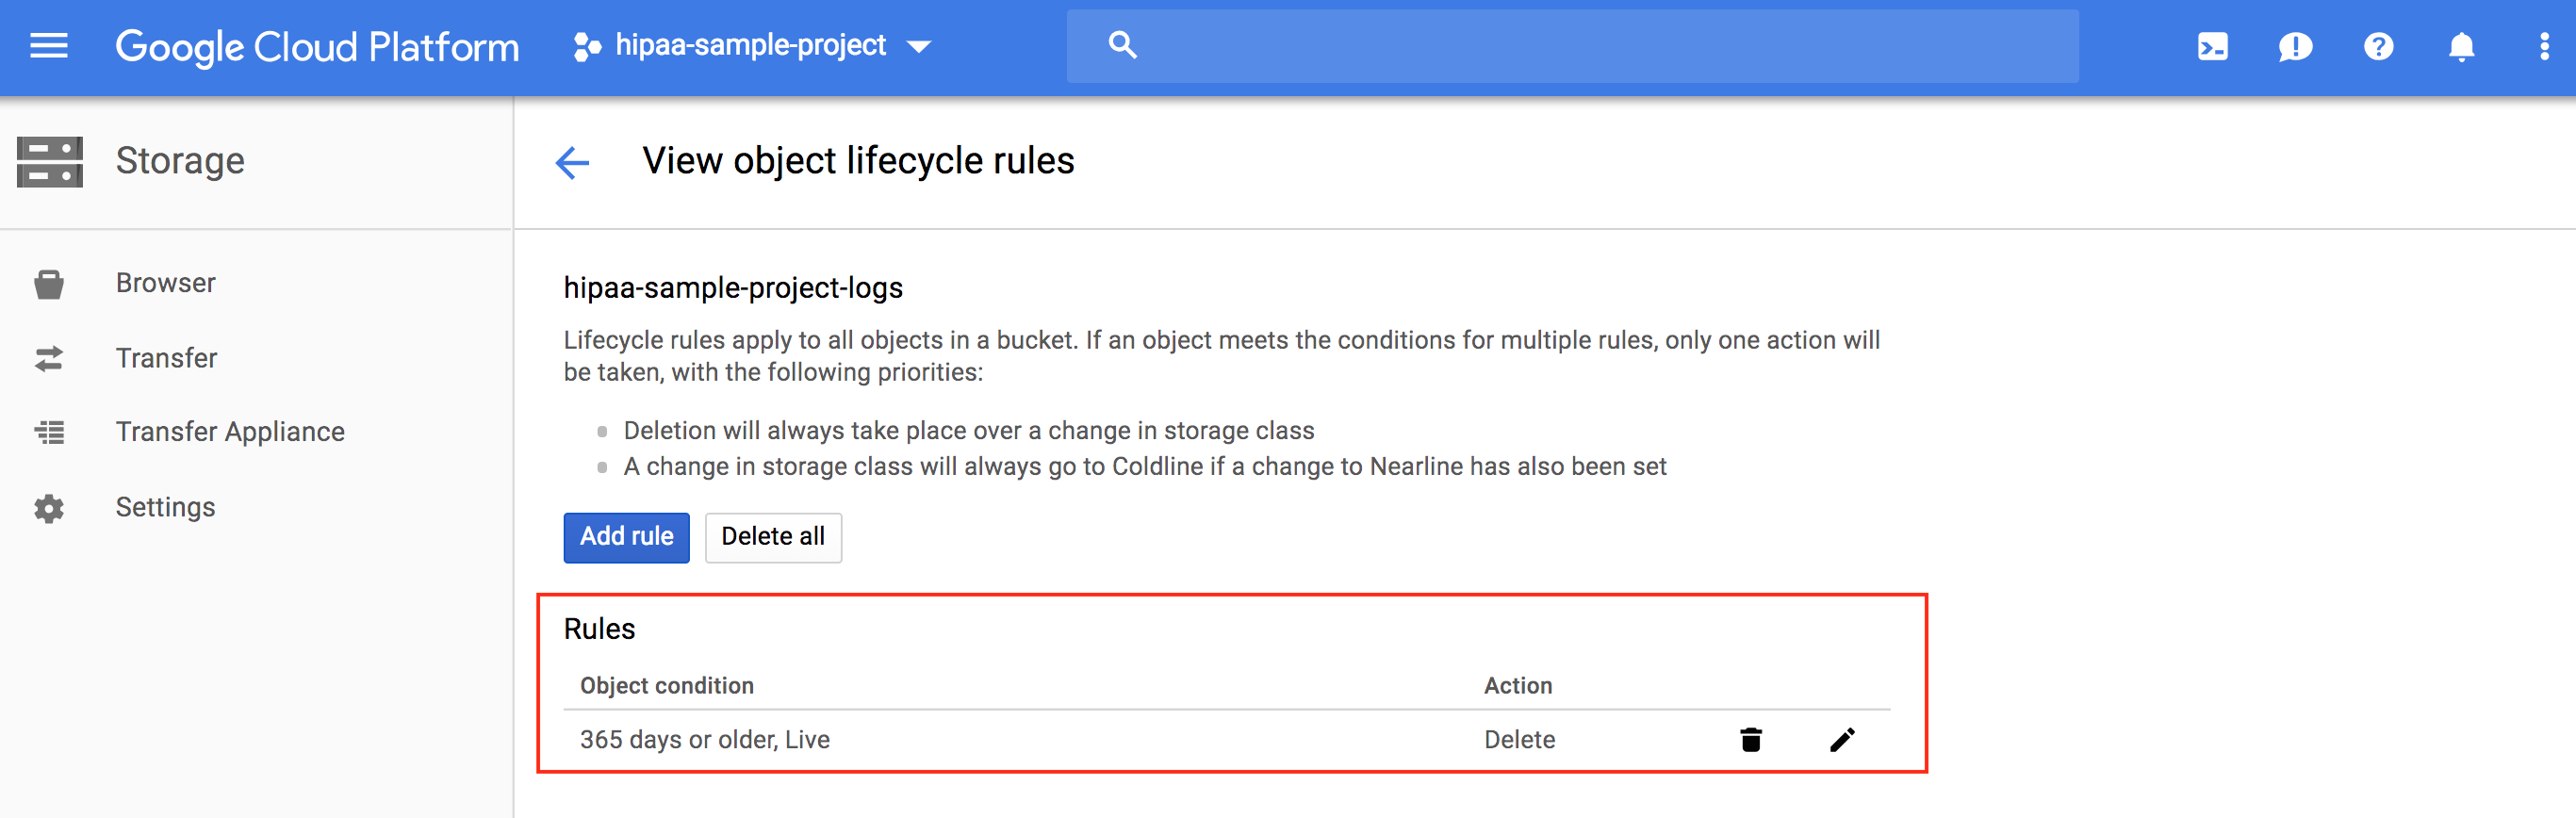 Viewing the lifecycle policies